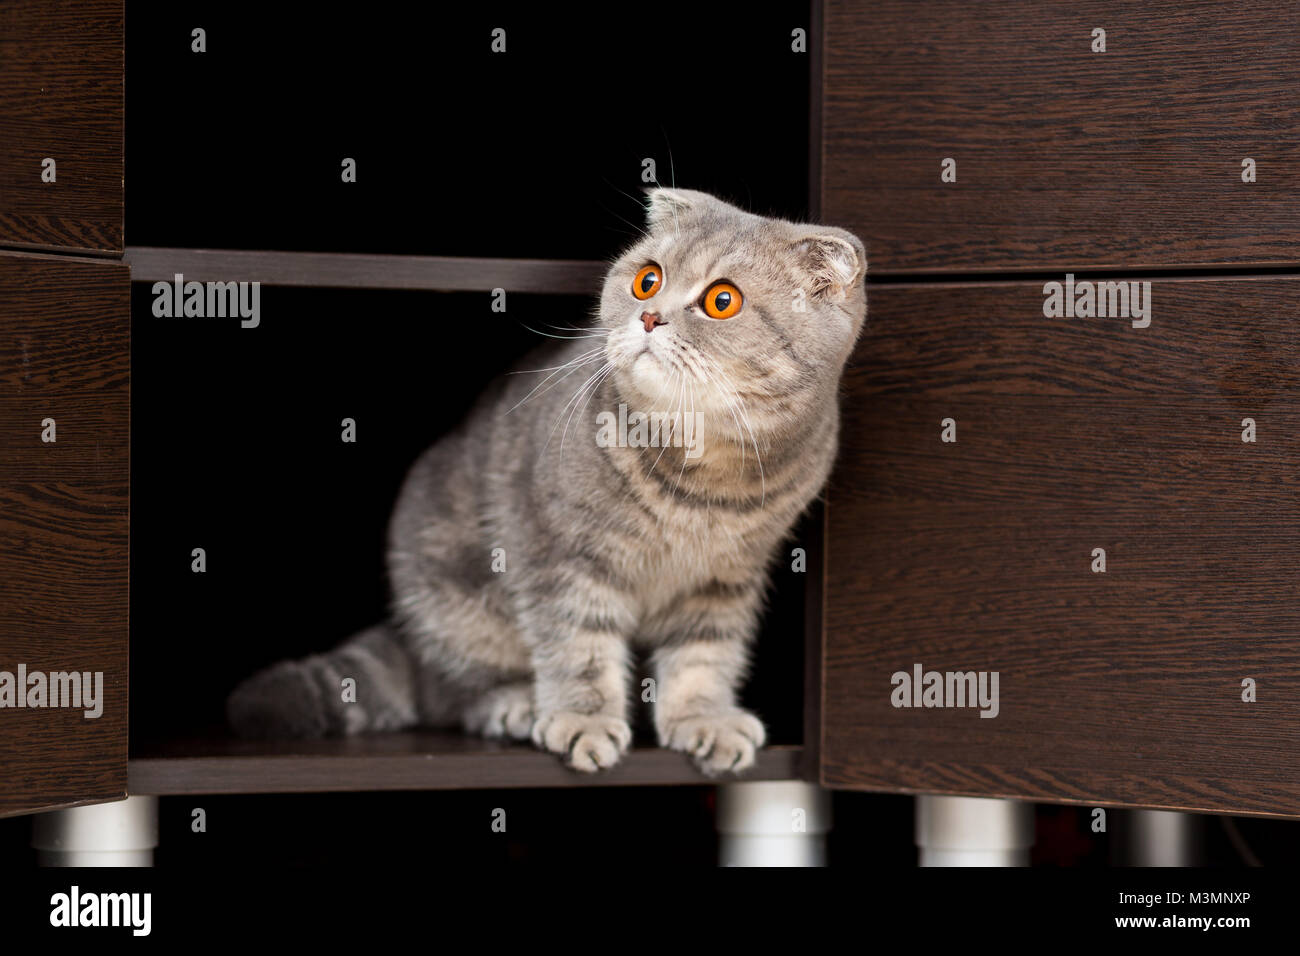 Cat of the breed Scottish Fold looks out of the closet with an inquisitive look Stock Photo